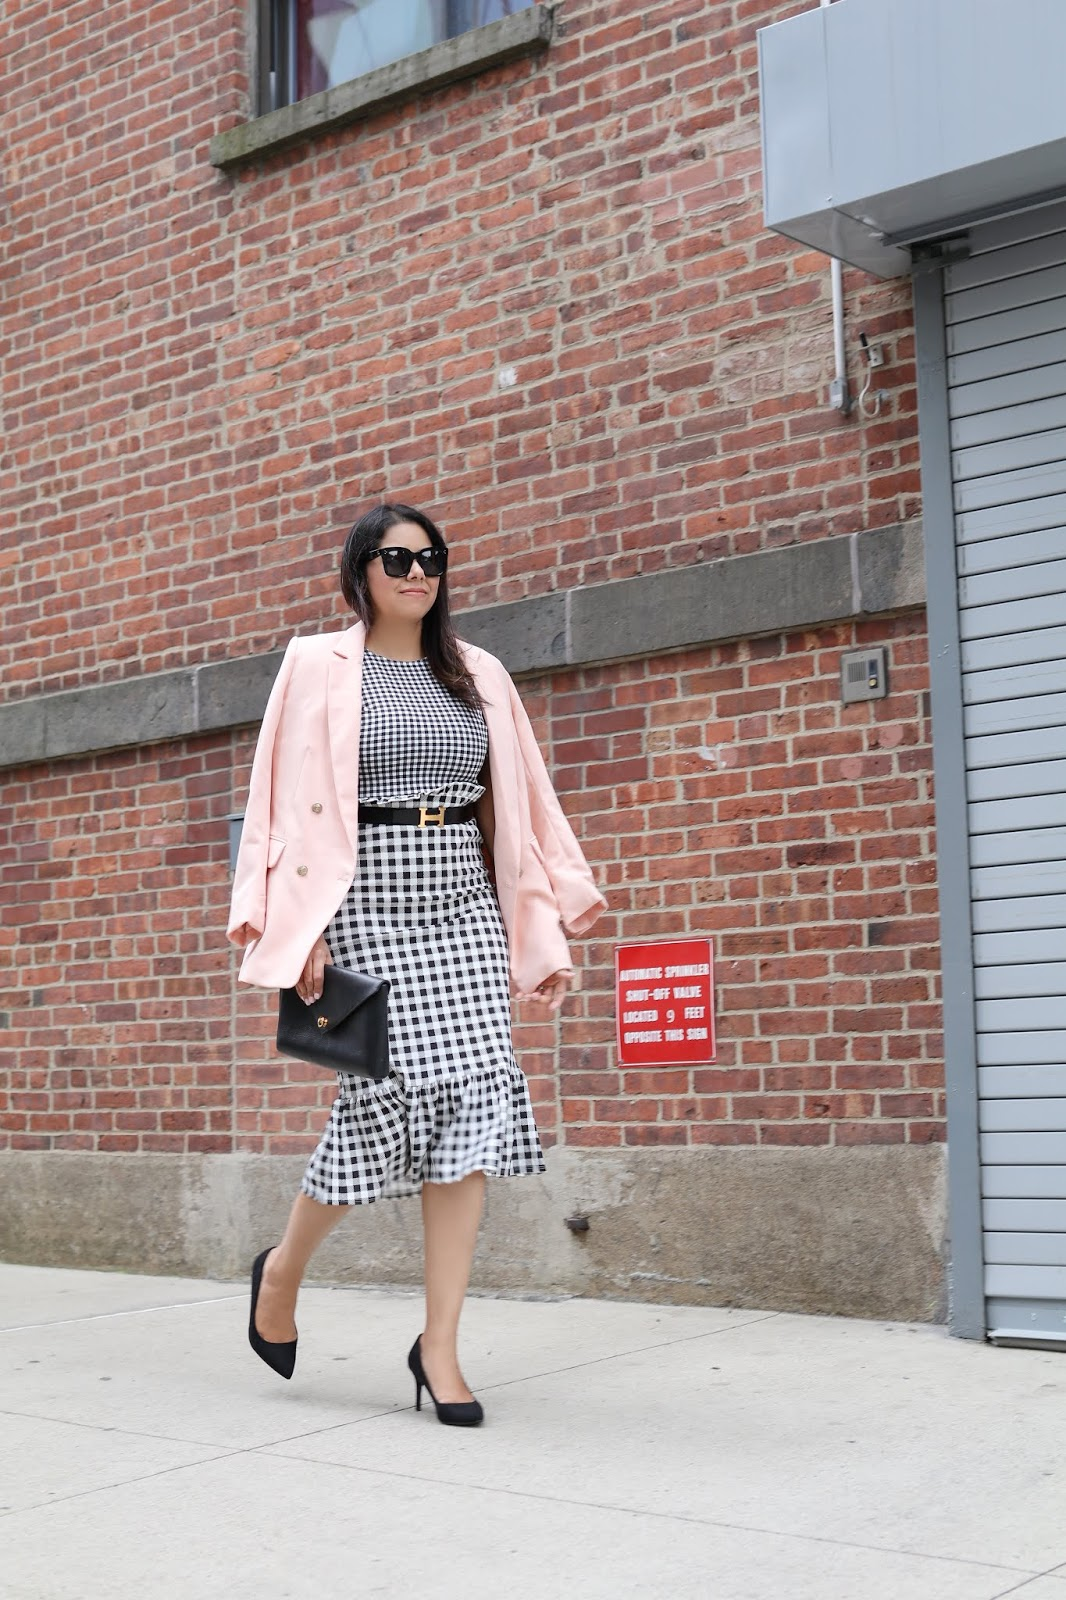 NYFW Street style, NYFW chic outfit